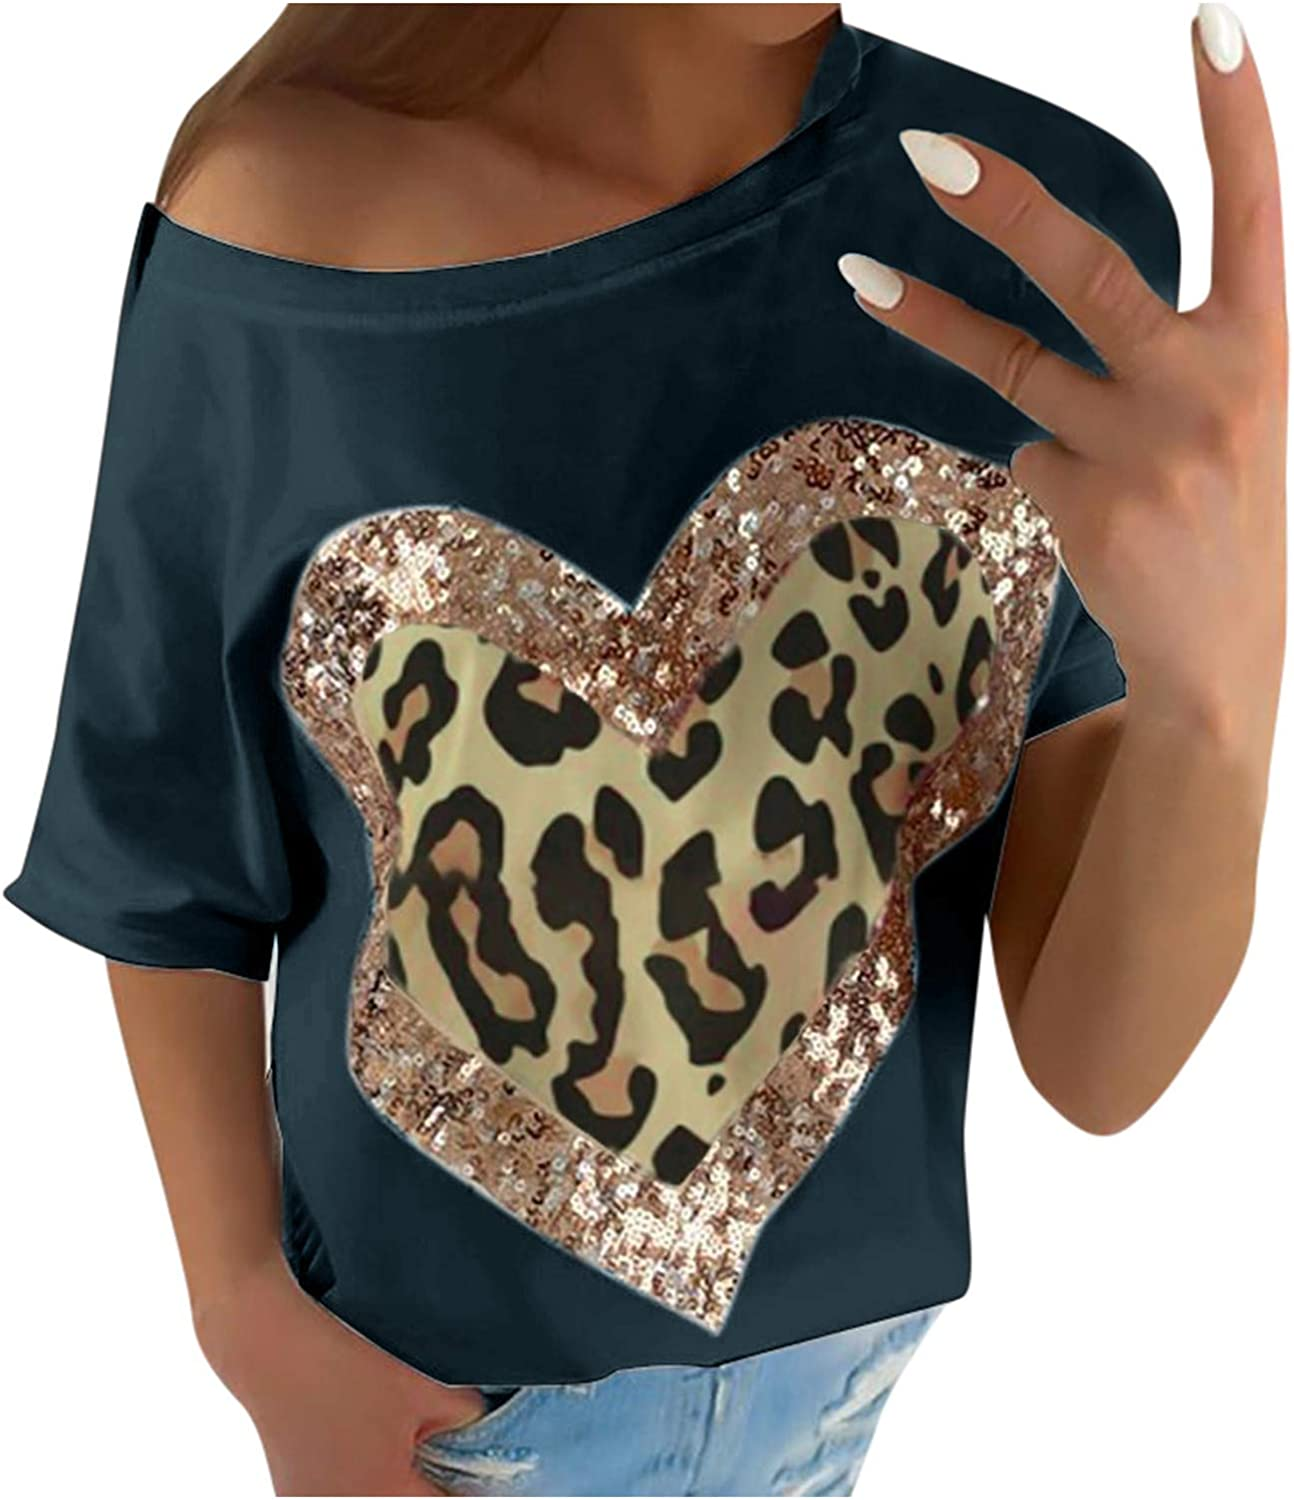 Shirts for Women Wholesale Sexy Casual Today's only Women's Round Leo Sequin Love Neck